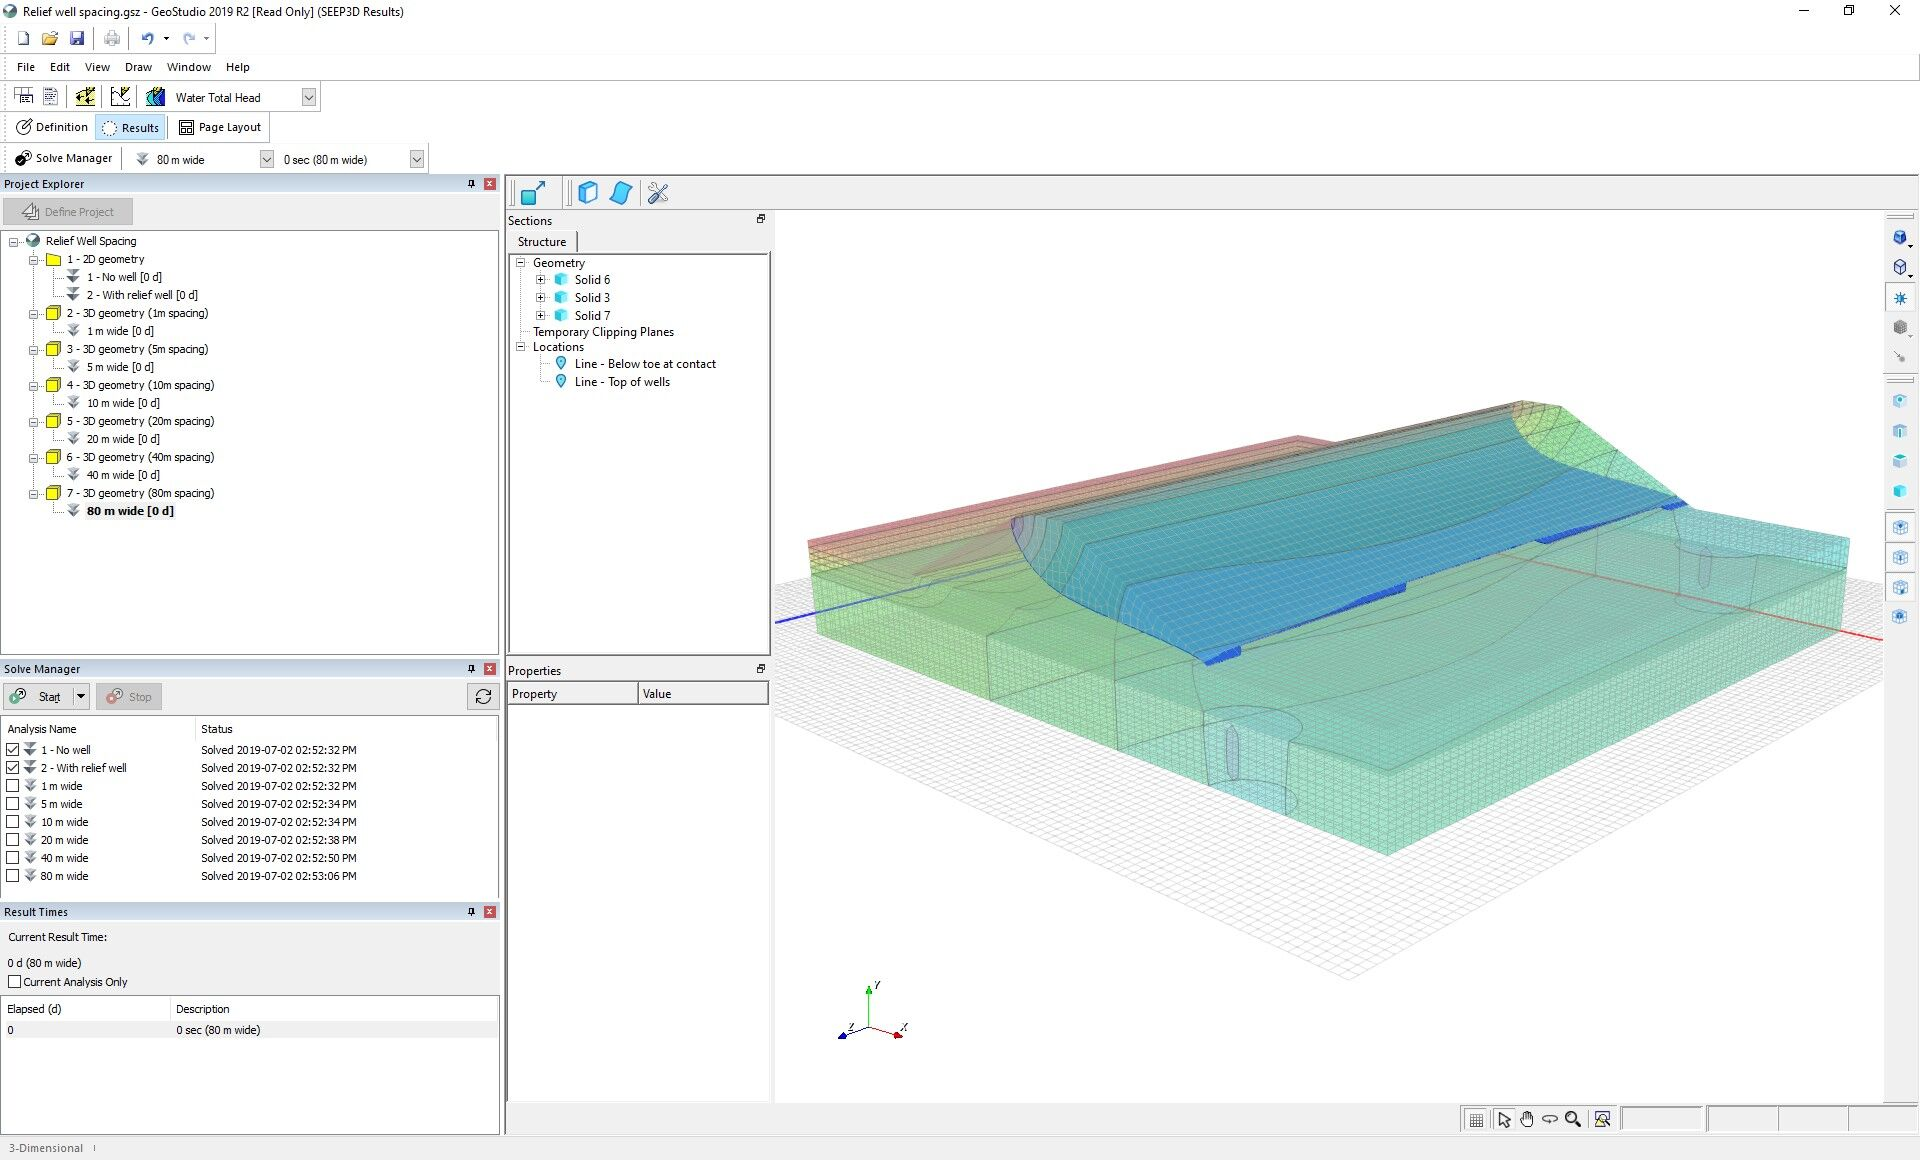 Seequent expands solutions portfolio with GEOSLOPE's geotechnical analysis software GeoStudio